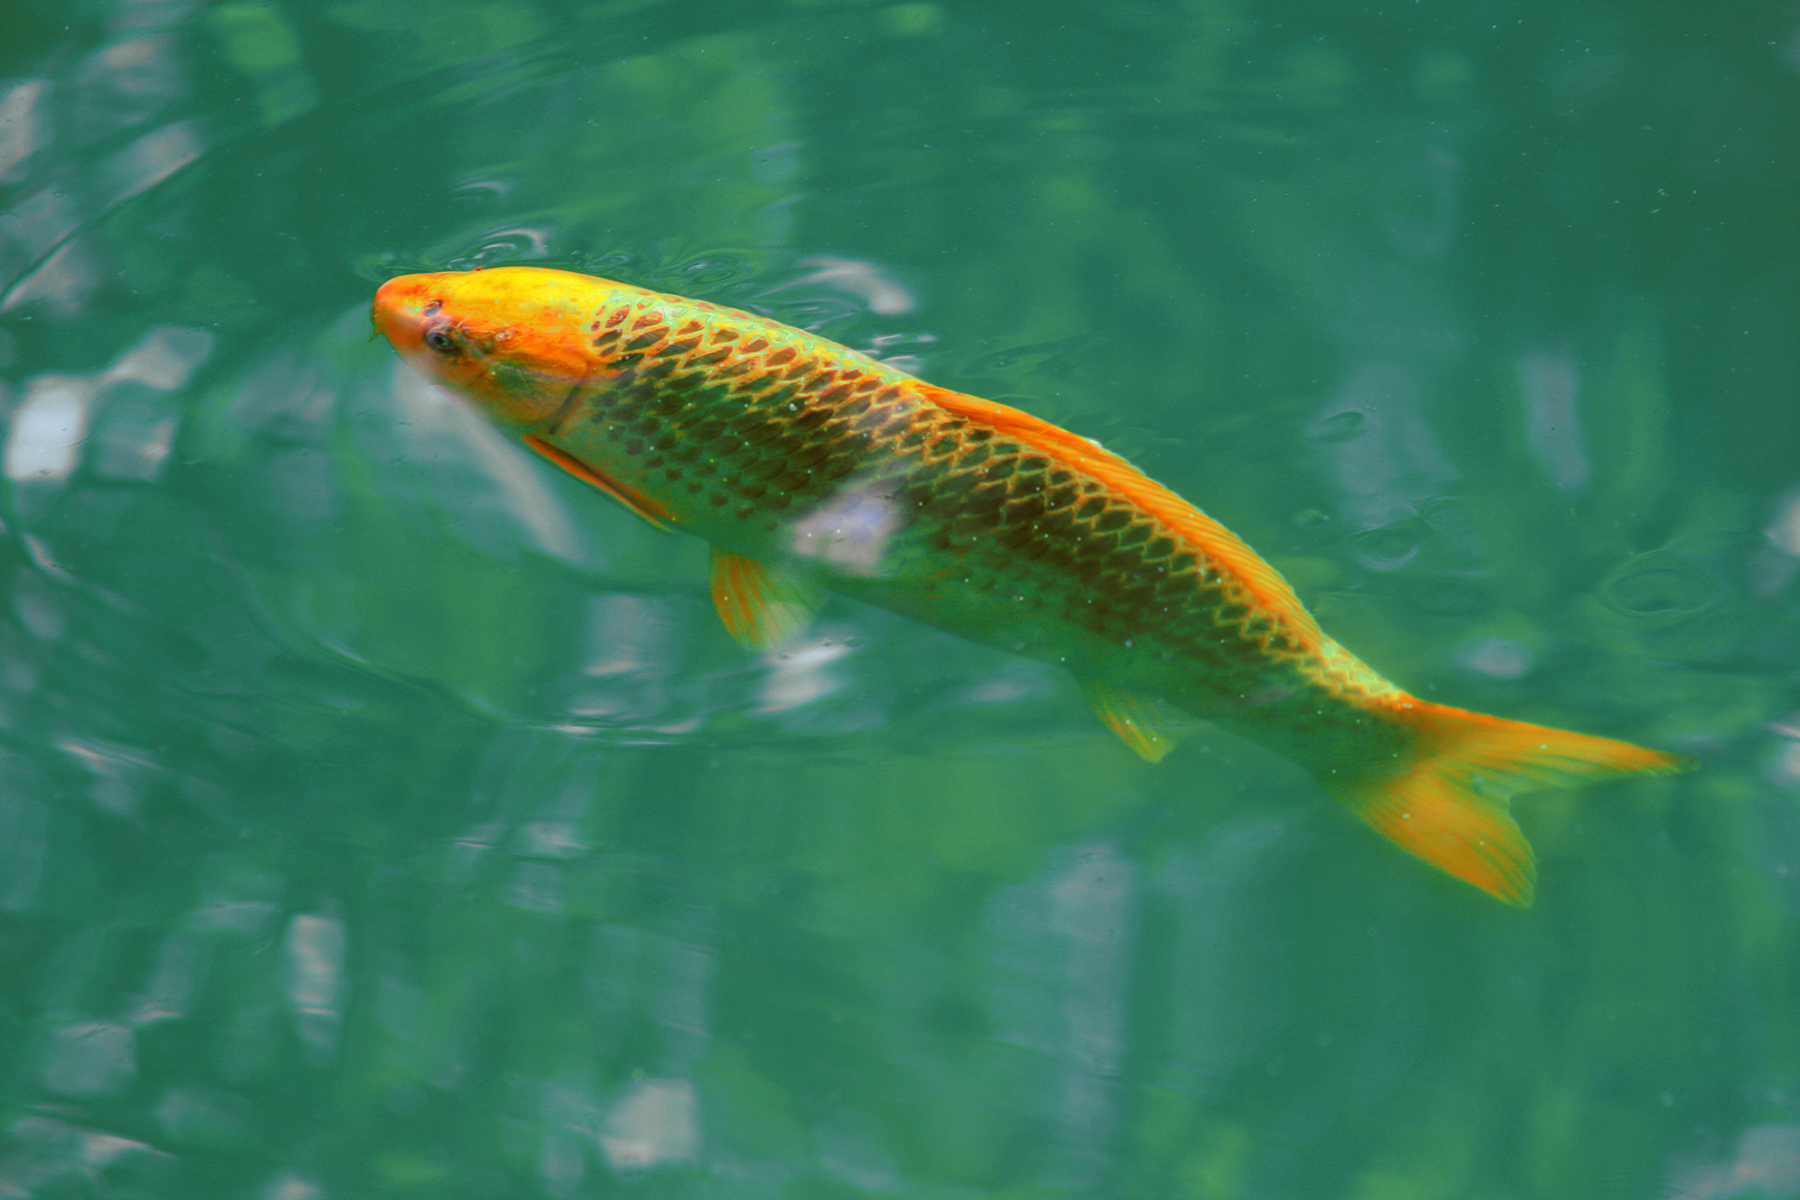 White spot ich koi health and pond care for Large koi carp